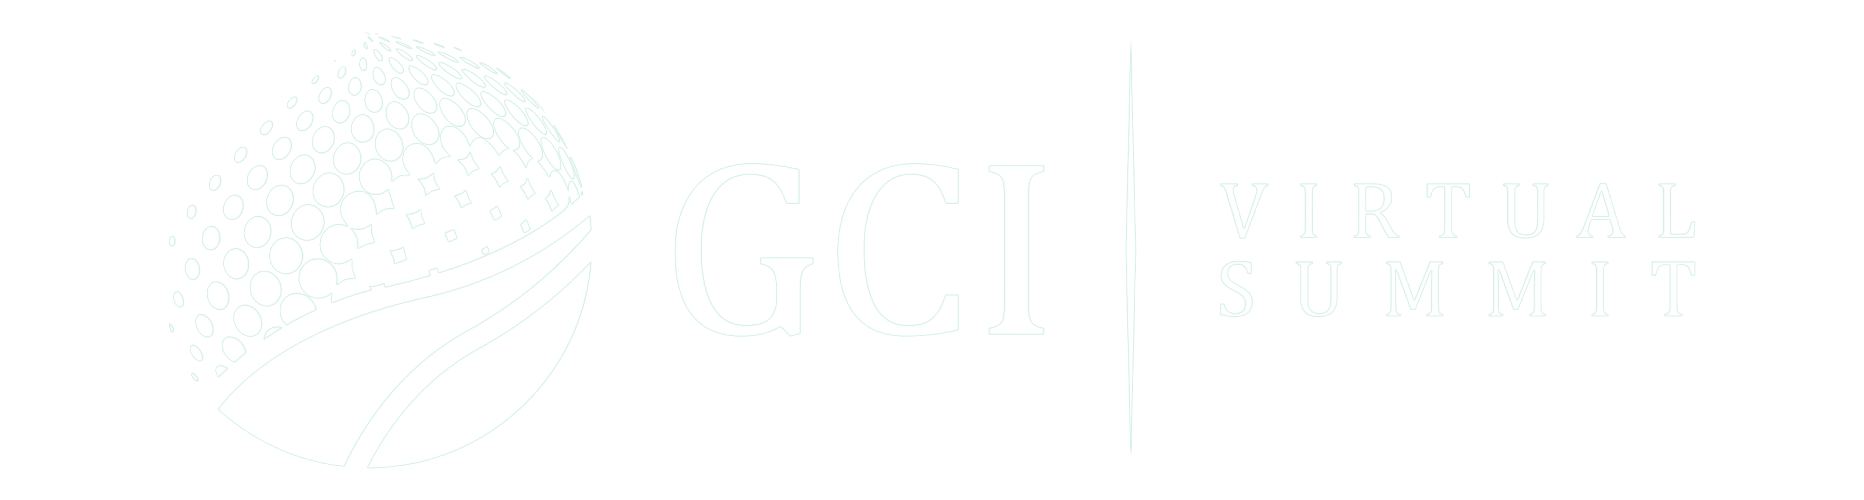 GCI Virtual Summit